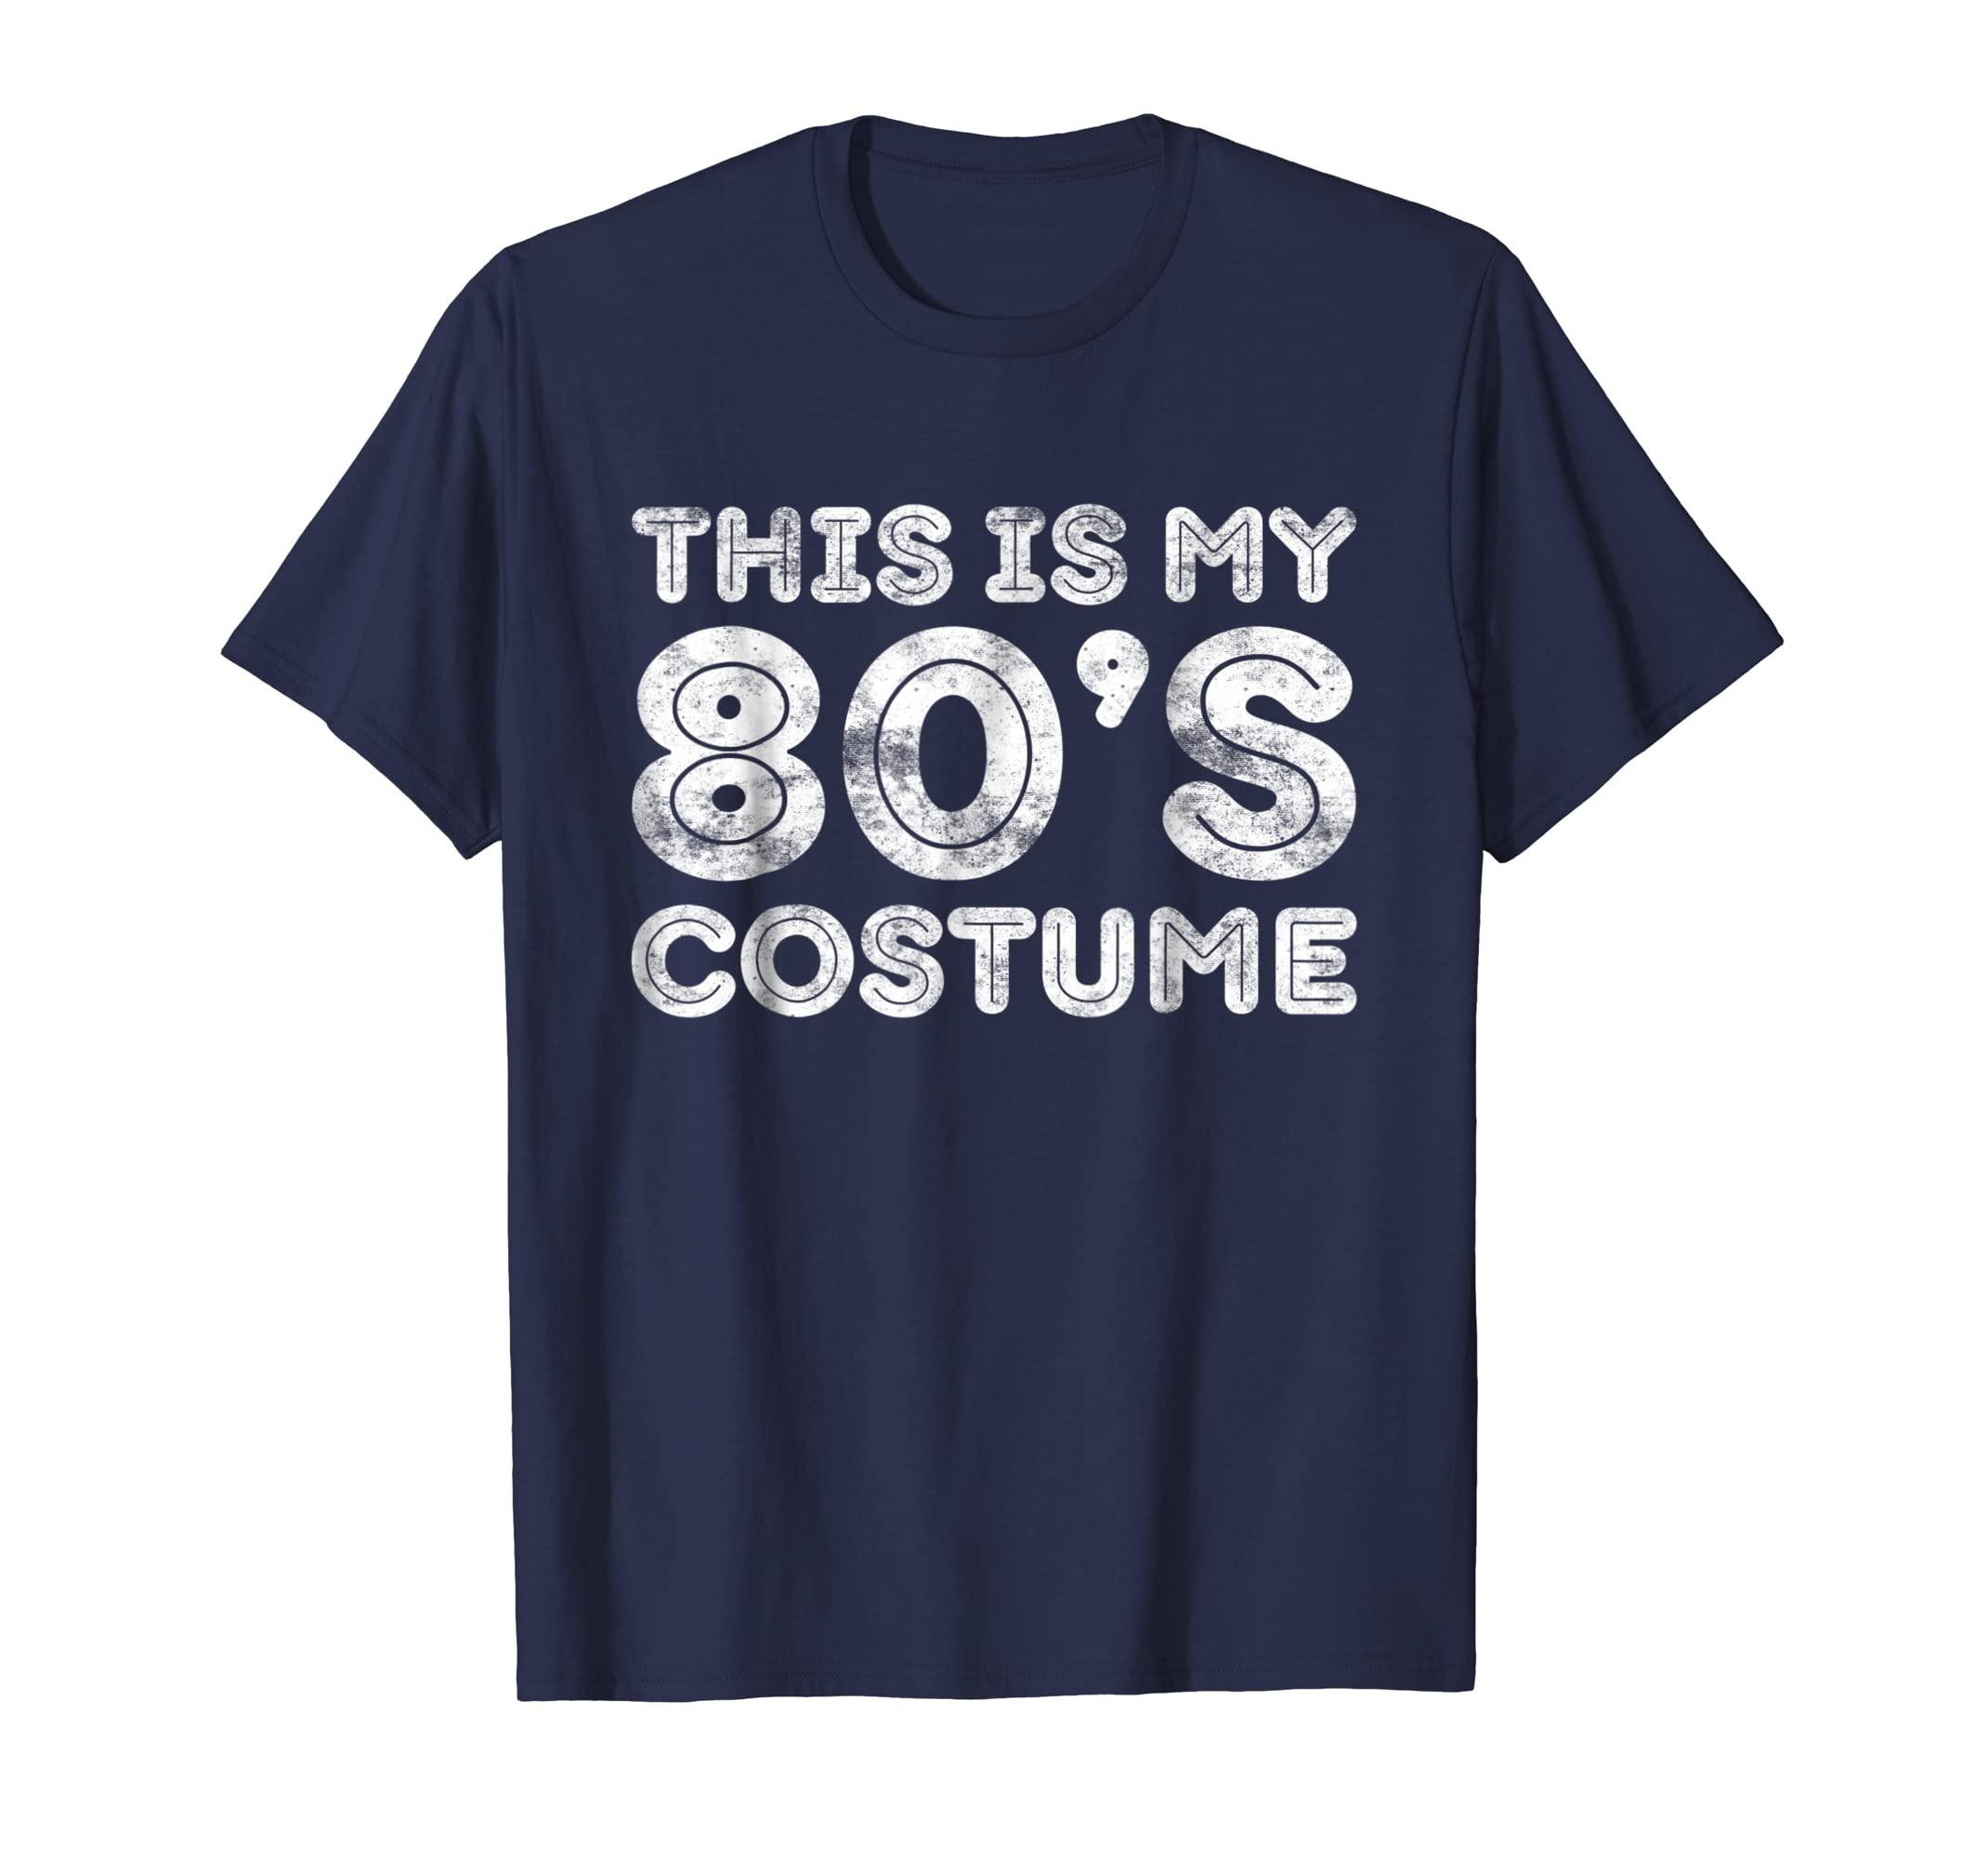 This Is My 80s Costume T Shirt 80'S Party Shirt-Bawle